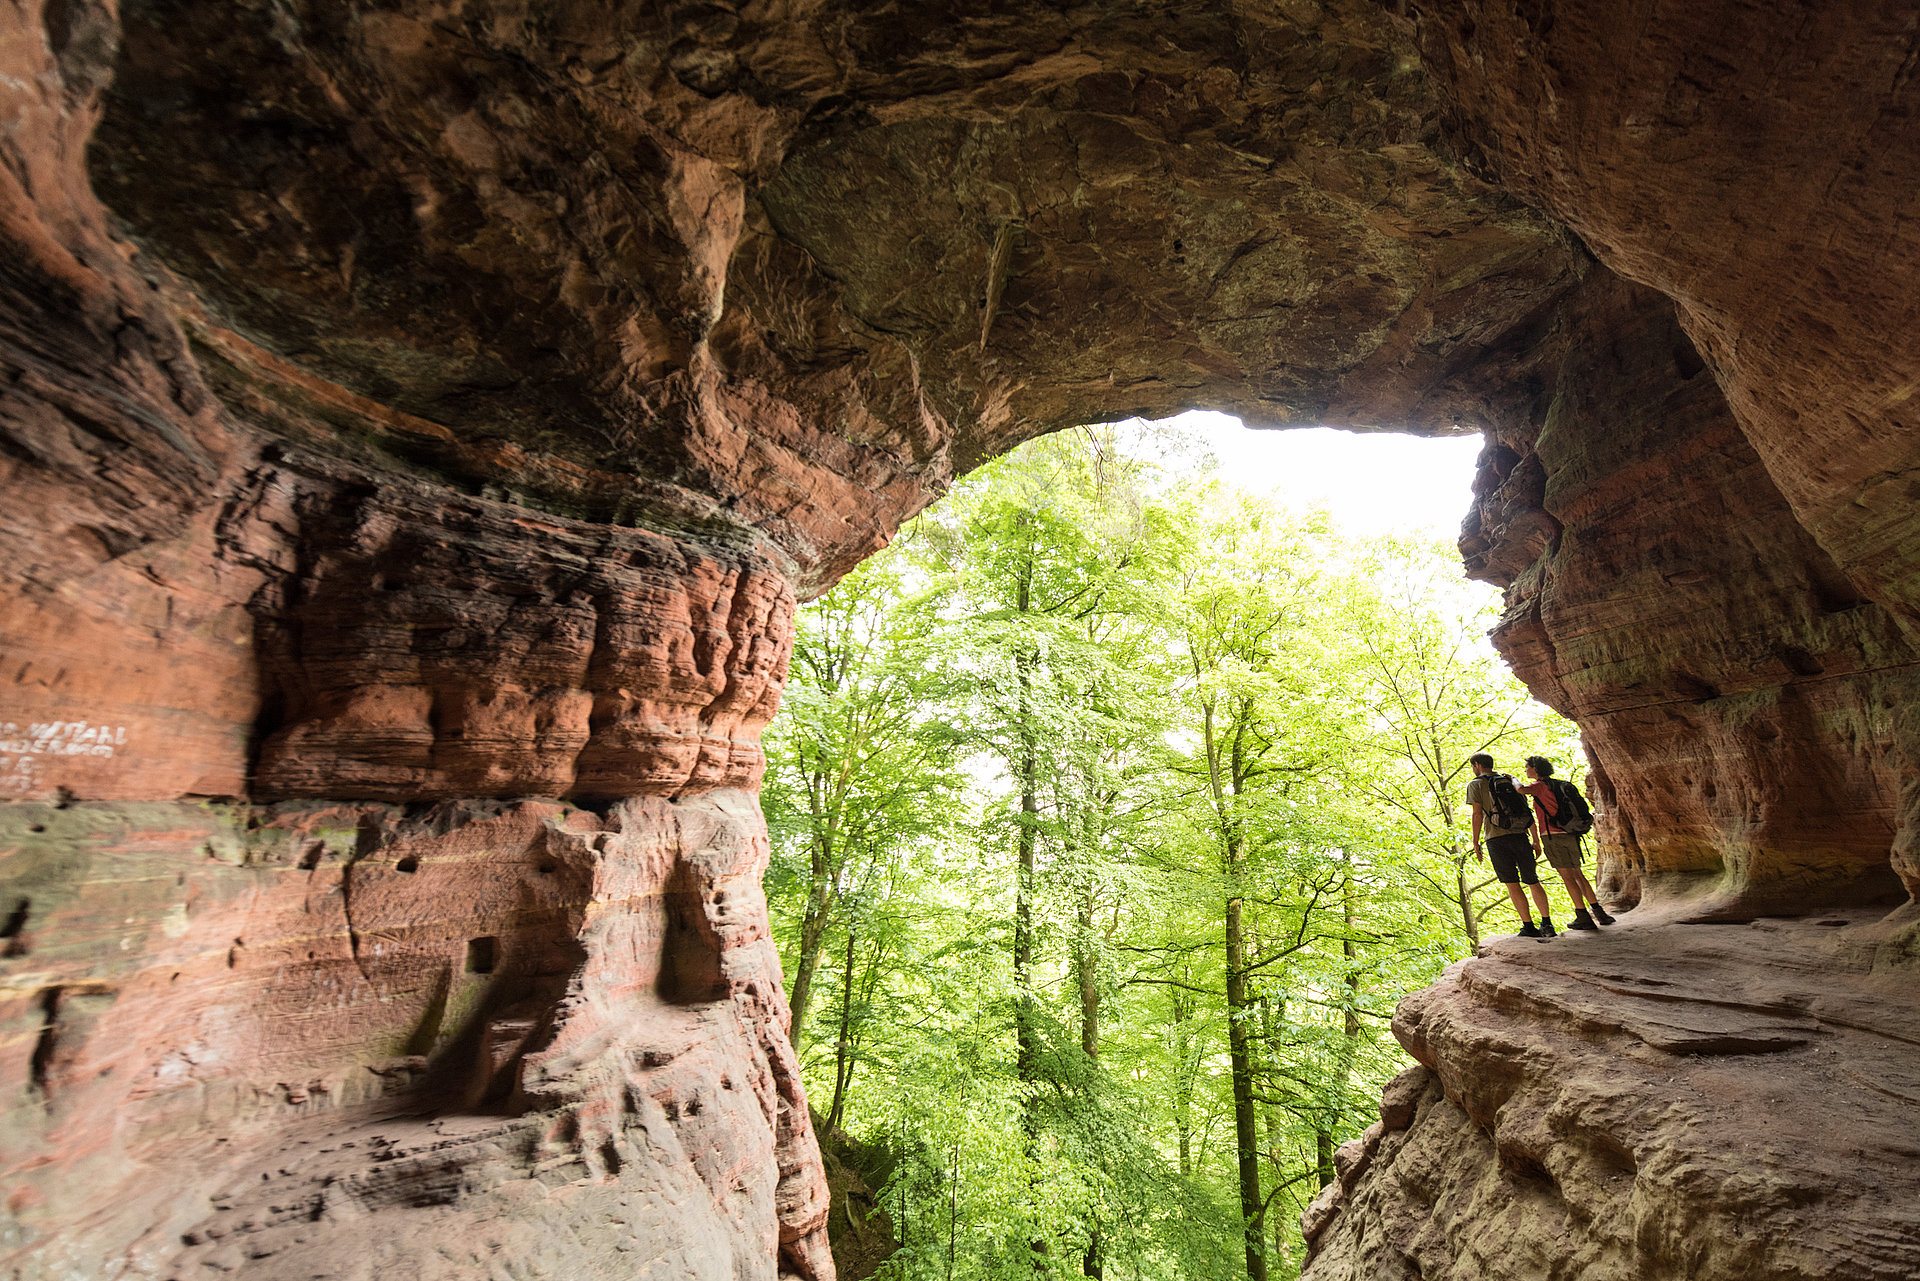 The Genoveva Cave in the Kylltal on the Eifelsteig, Eifel